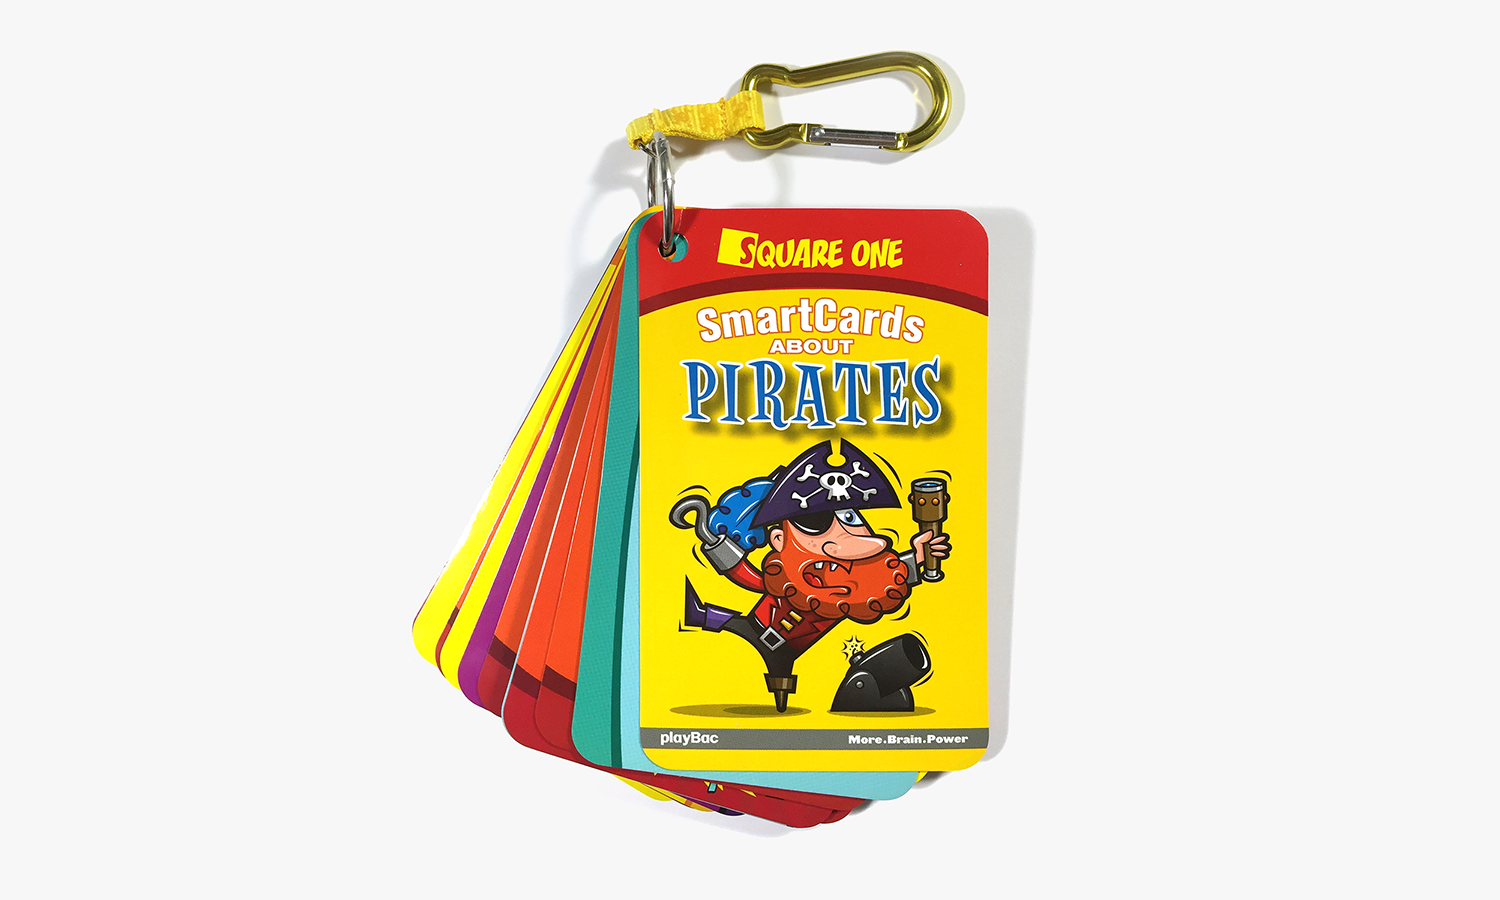 playbac-pirate_smartcards-cover2.png